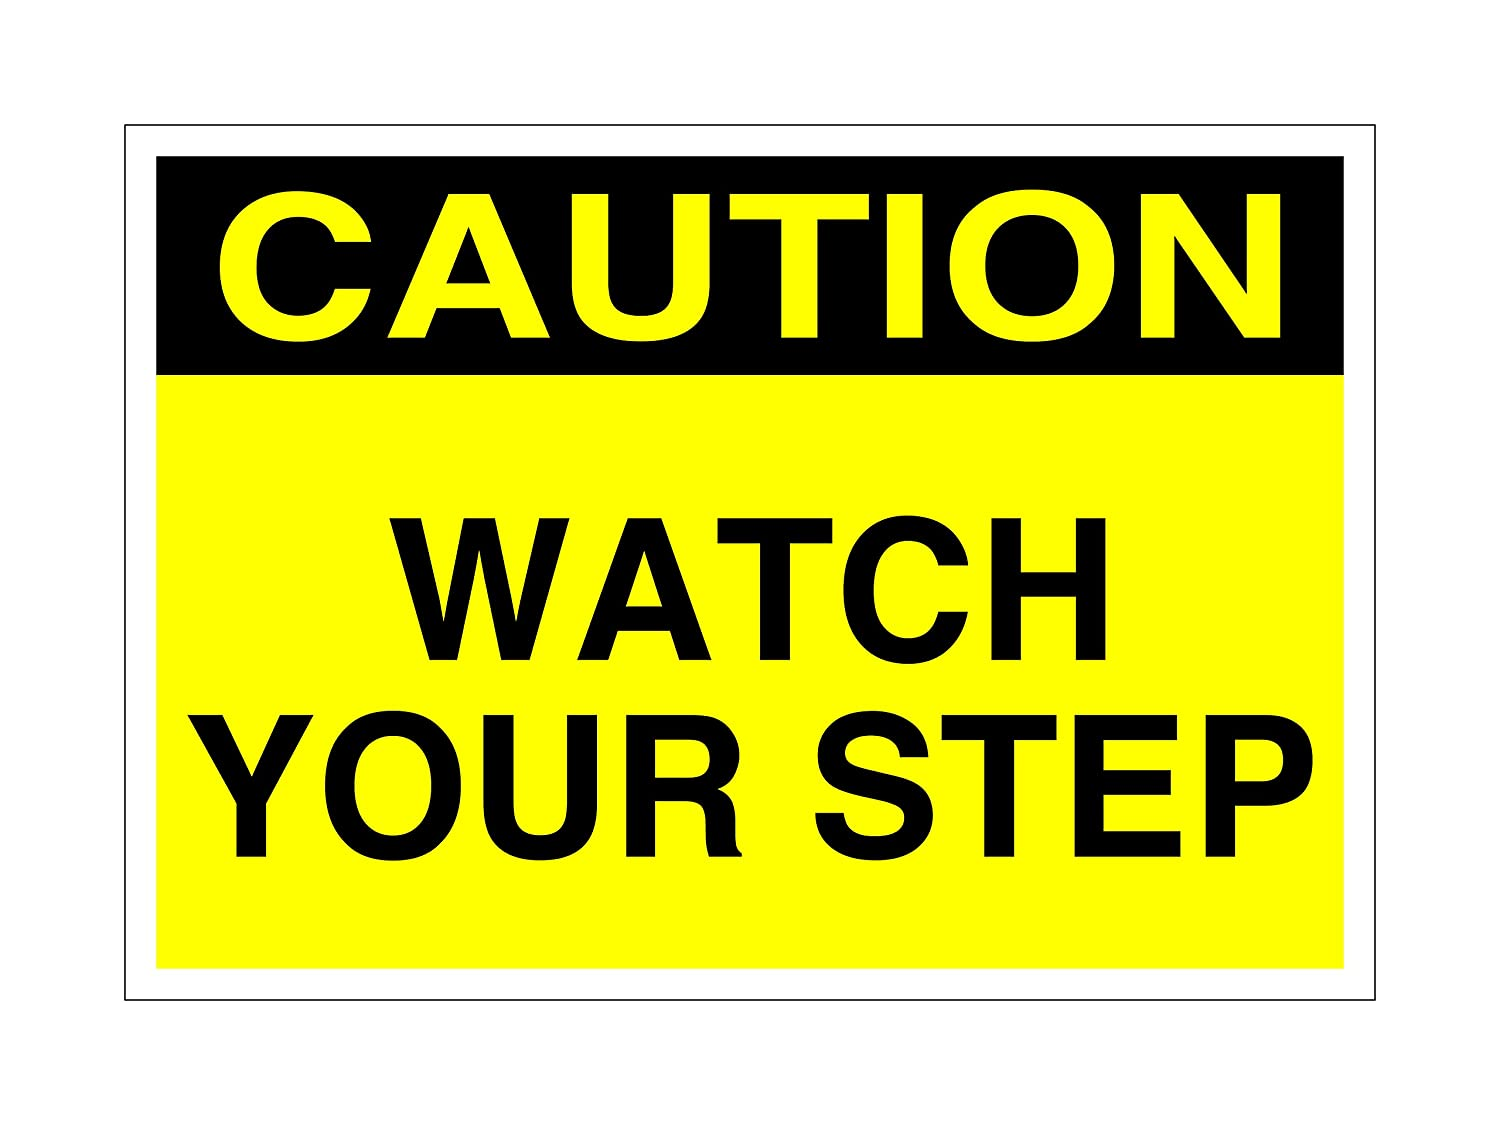 Supply360 Aluminum Workplace Caution Watch Your Step Sign - 7